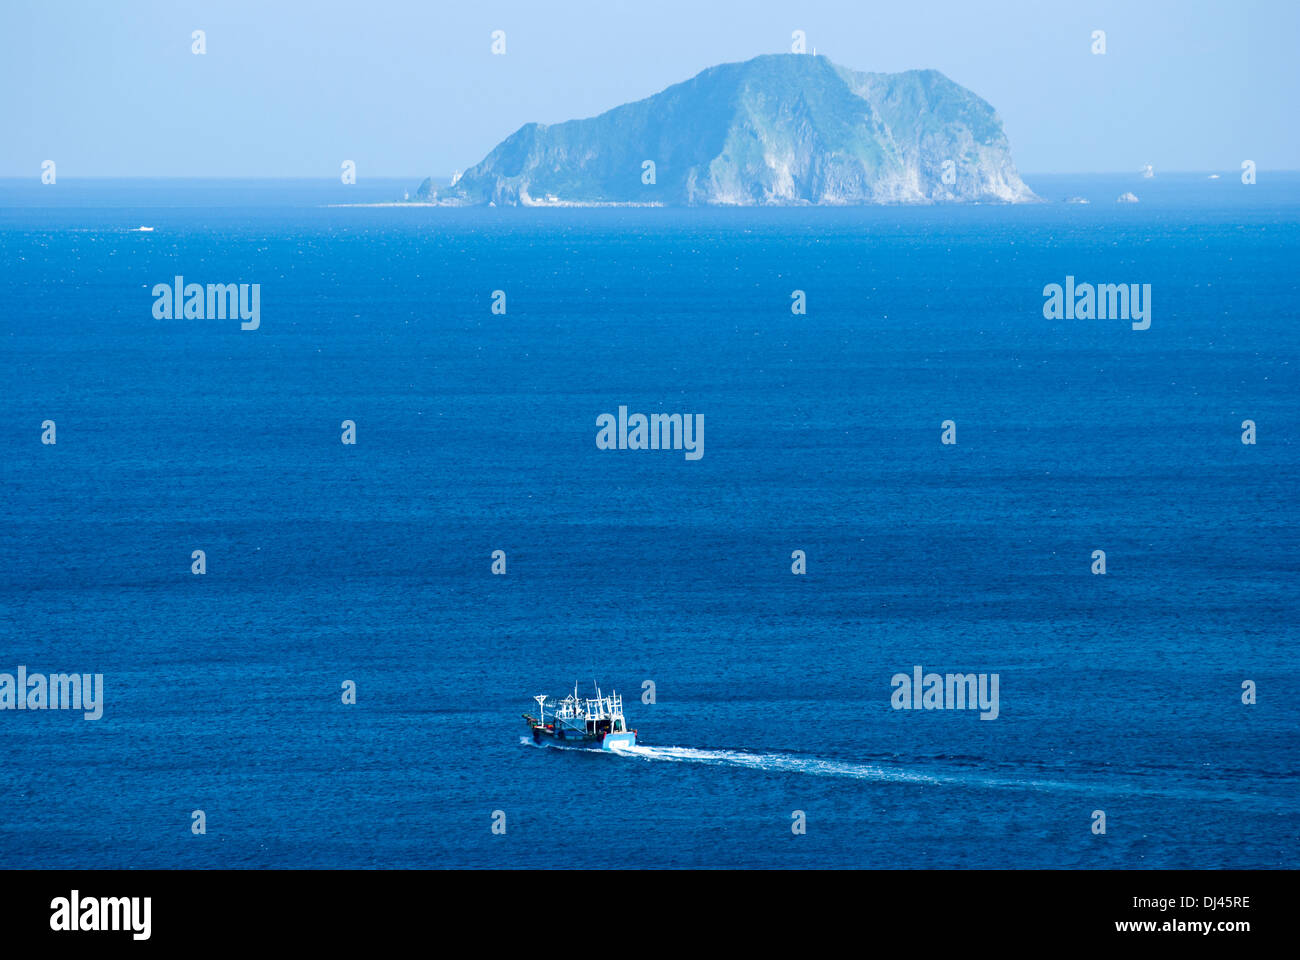 Little fisher boat goes through island - Stock Image